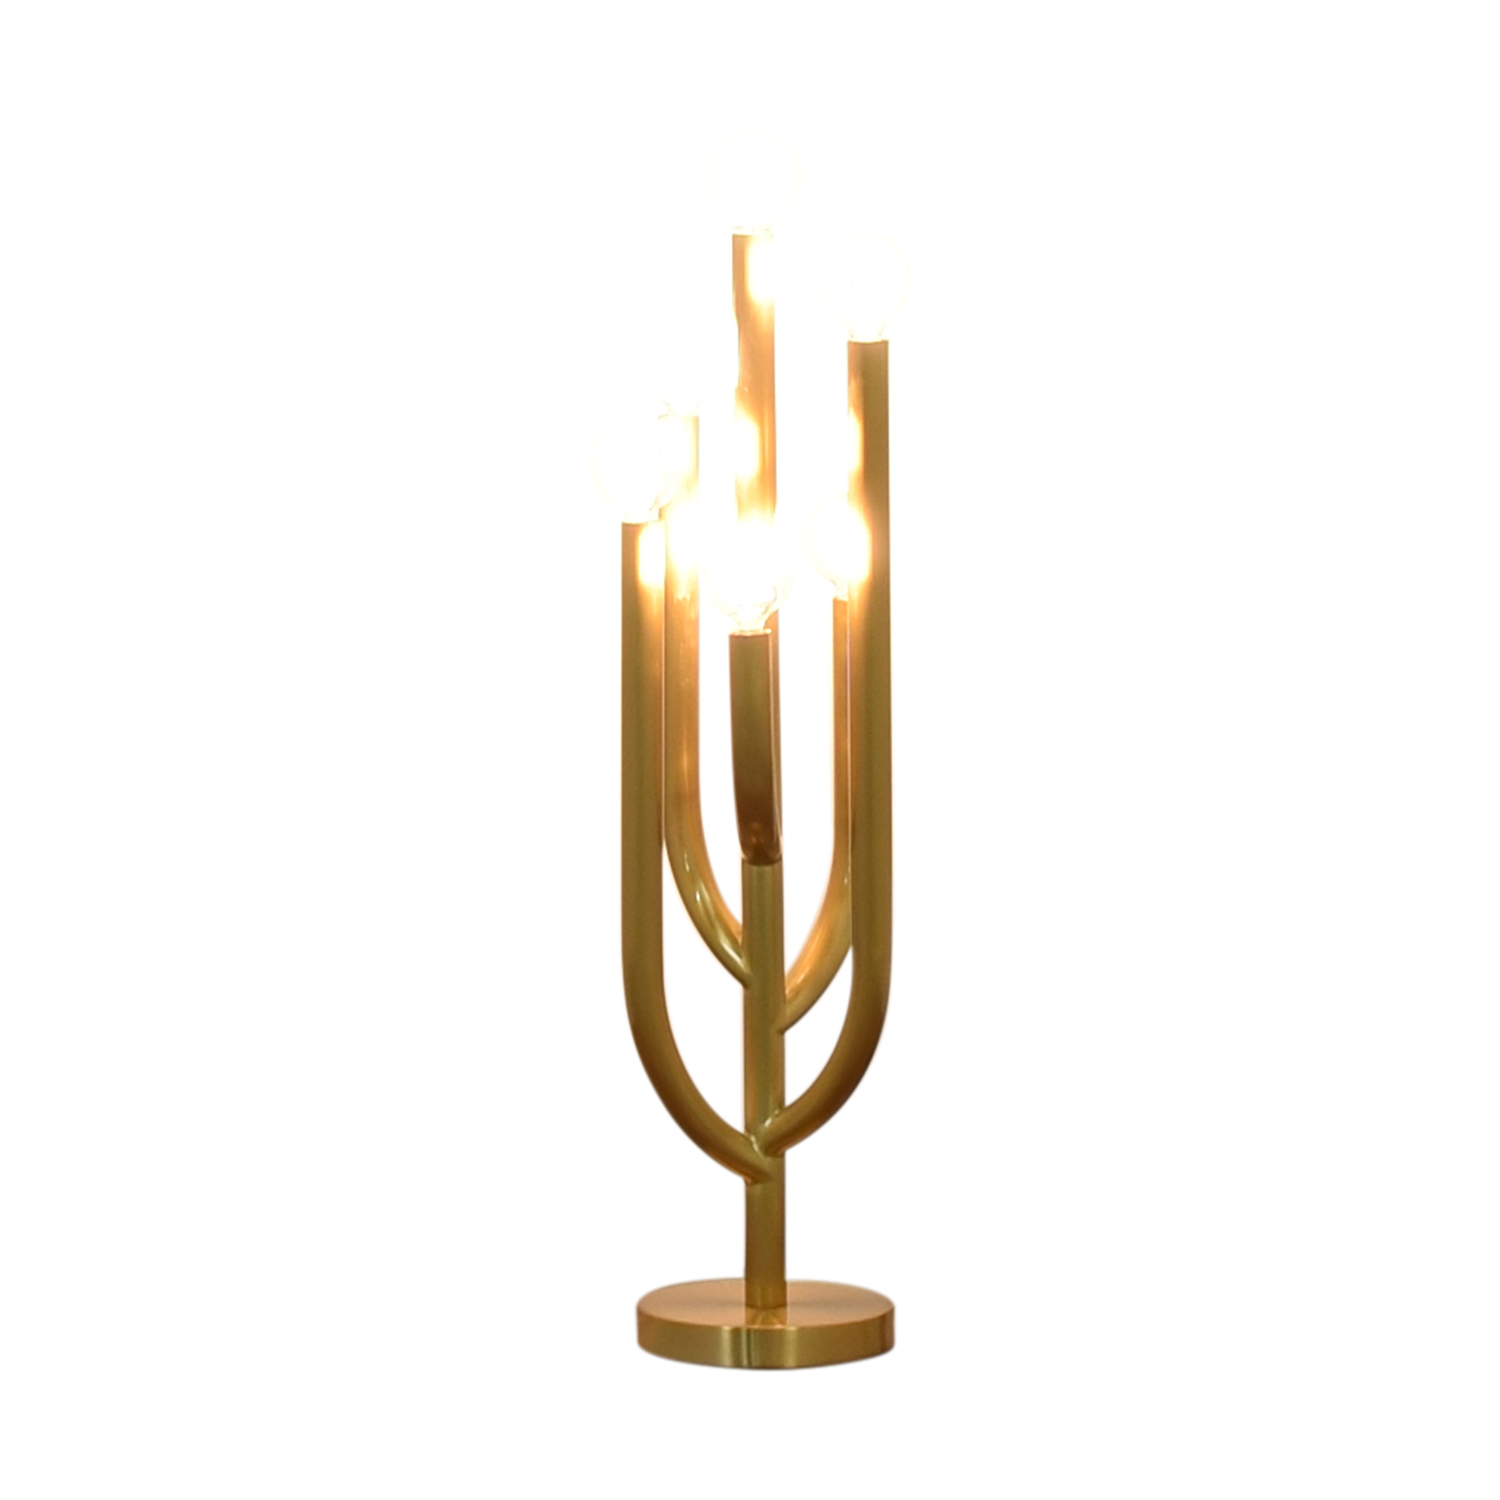 CB2 CB2 Fred Segal Cacti Glow Brass Table Lamp on sale